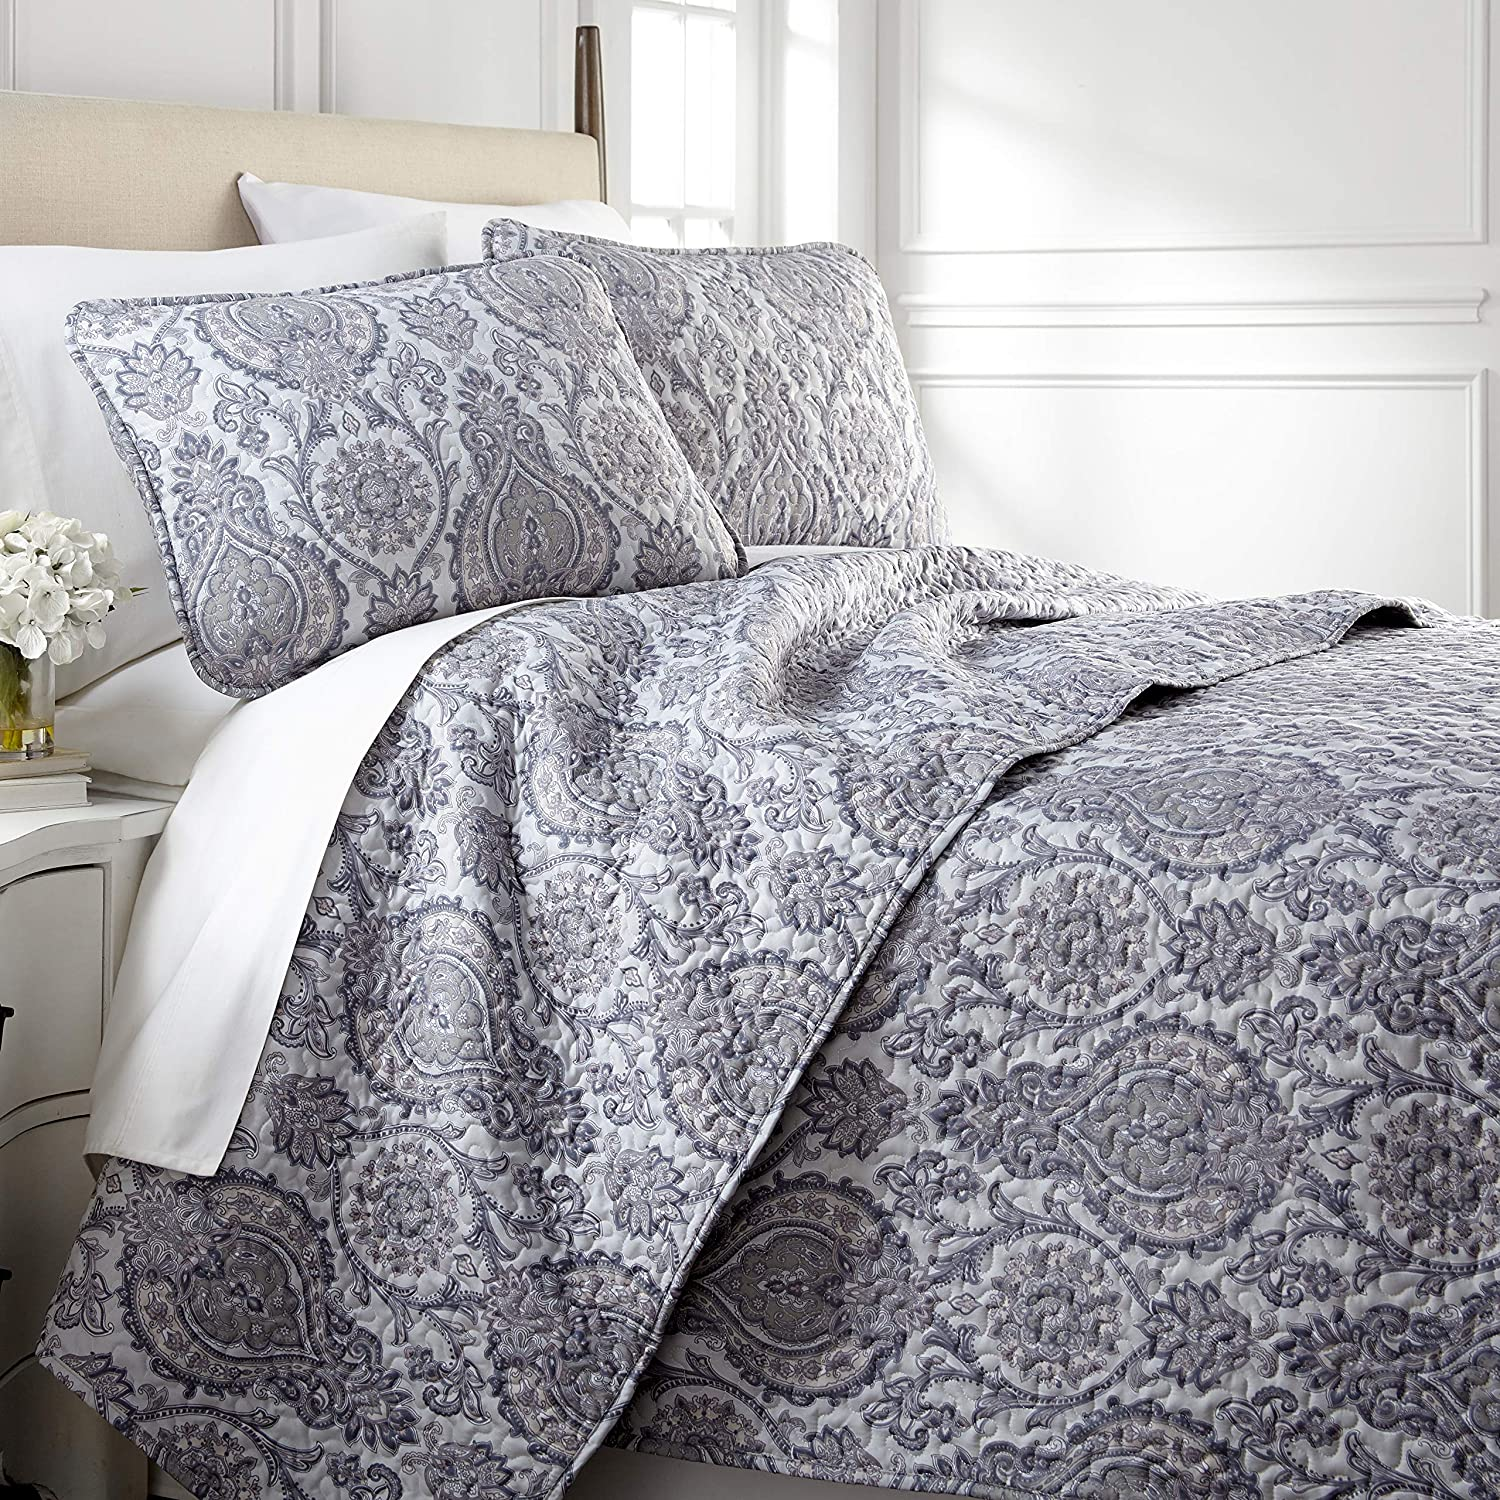 Southshore Fine Living, Inc. Boho Paisley Collection - Oversized Quilt Set, Full/Queen, Grey